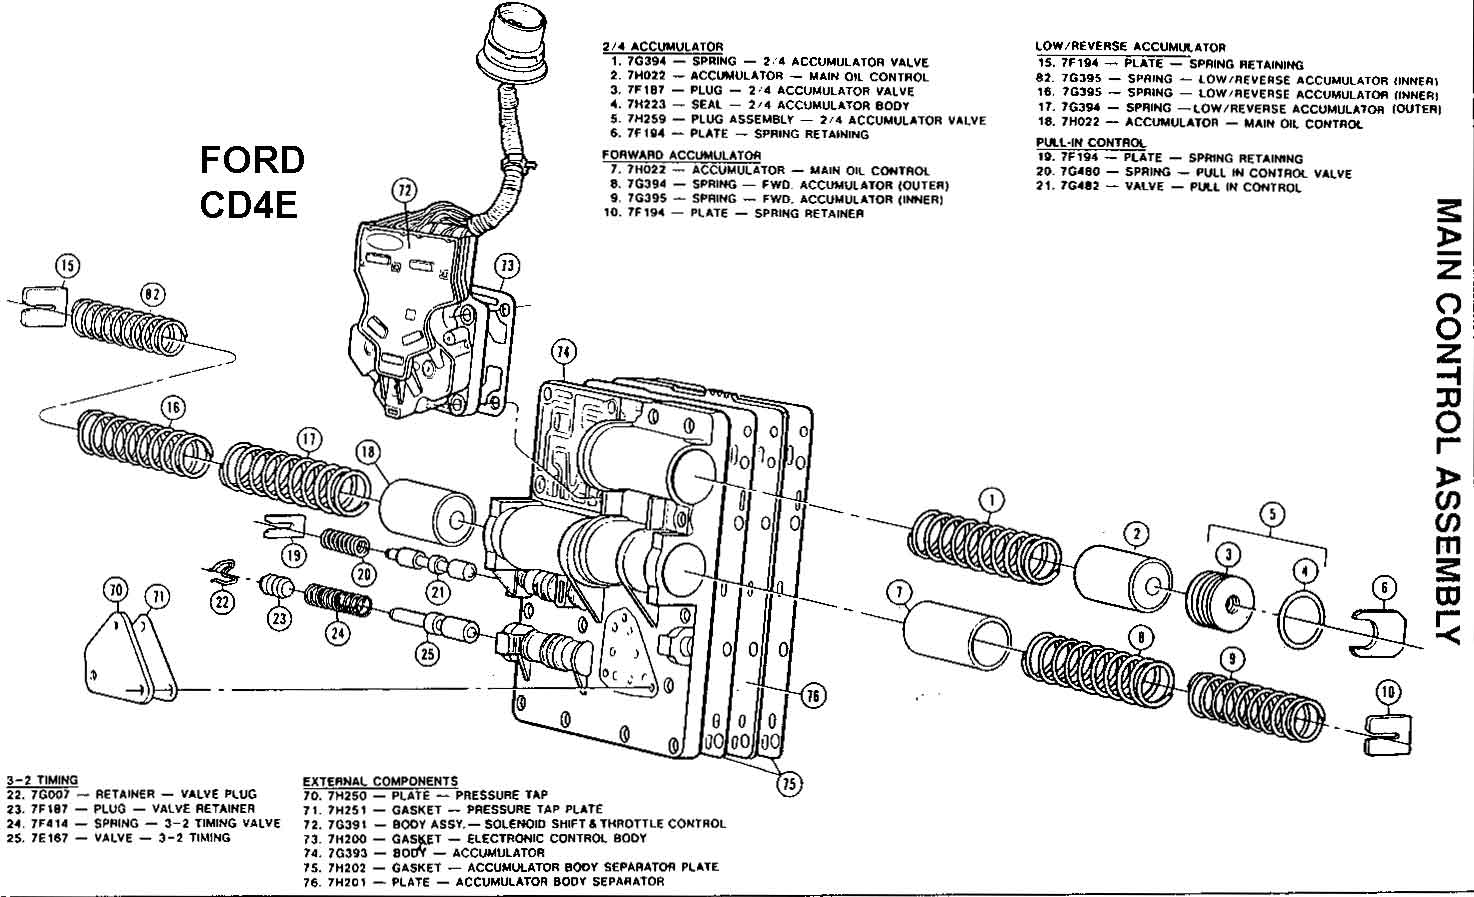 Diagrama De Cuerpo De Valvulas Ford Expedition 2003 besides 8lhm1 2001 F150 4 2l Hi Replacing Starter 2001 as well P 0996b43f80380354 also 231419942983 moreover Chevrolet S 10 2 2 1995 Specs And Images. on 1998 ford windstar transmission